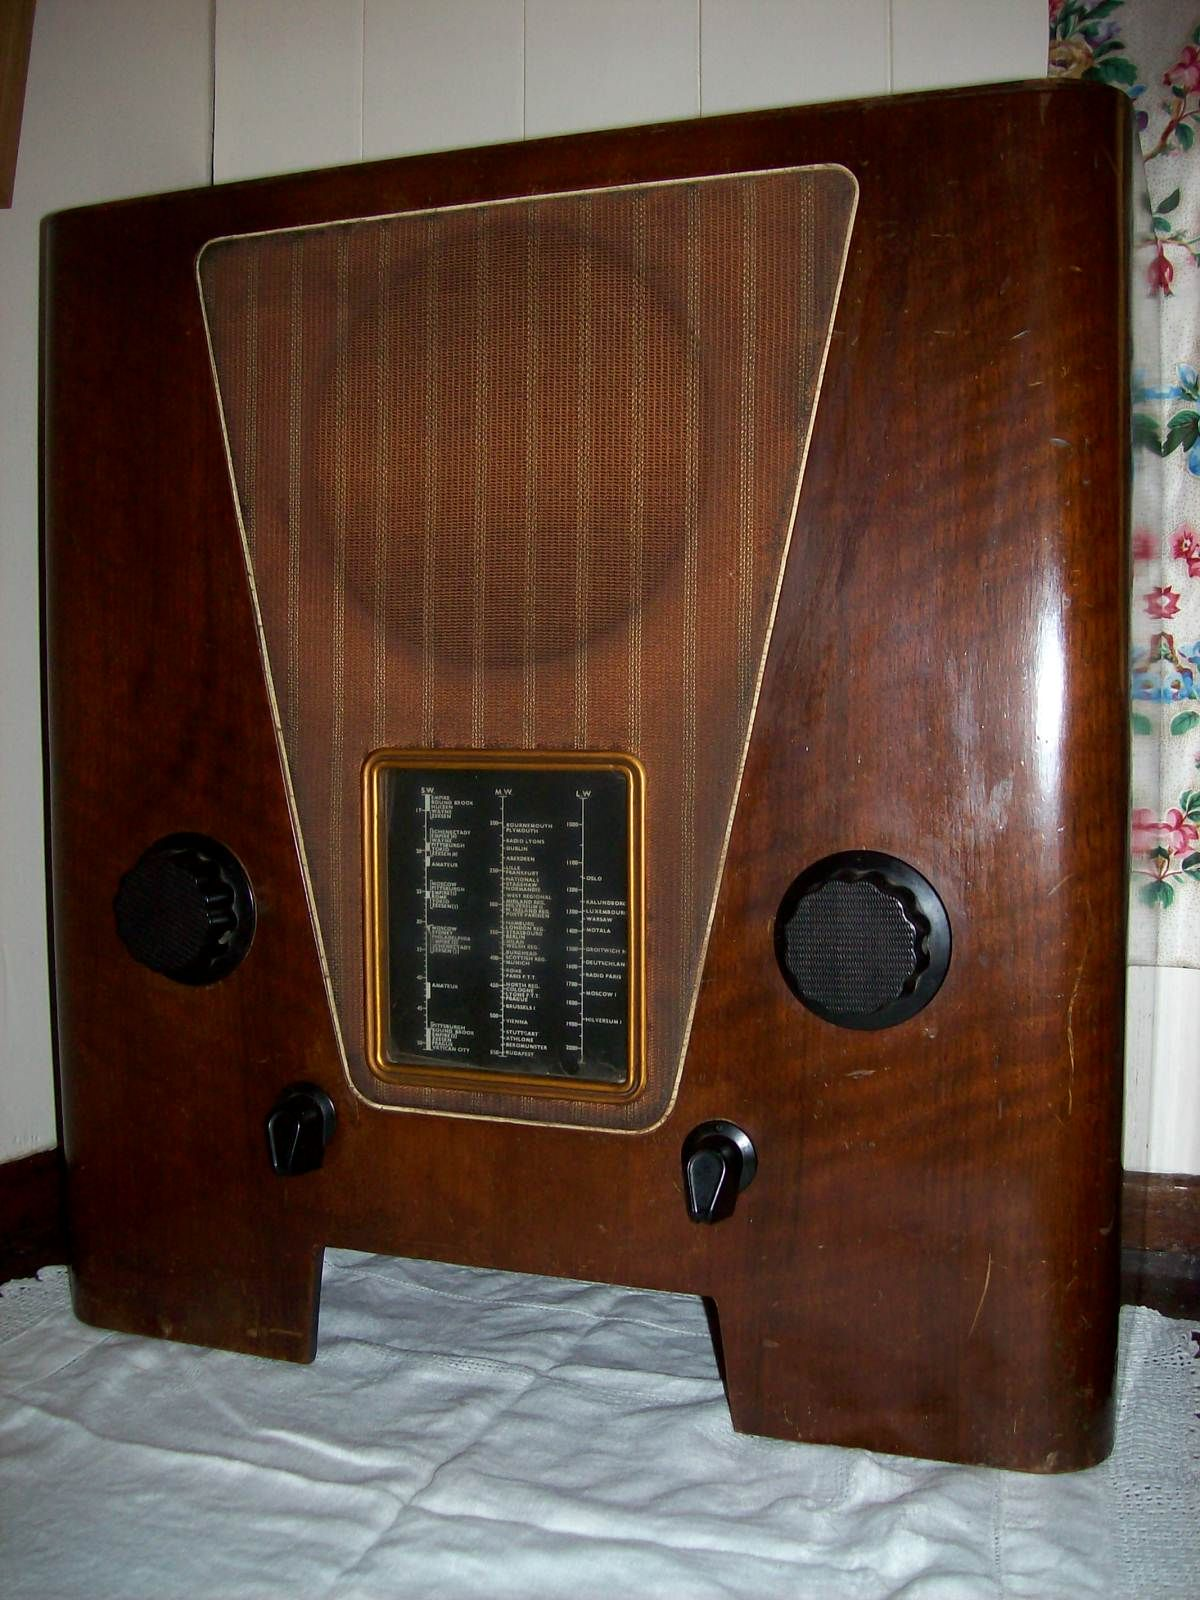 Vintage wireless radio set, used in the Yorkshire Dales